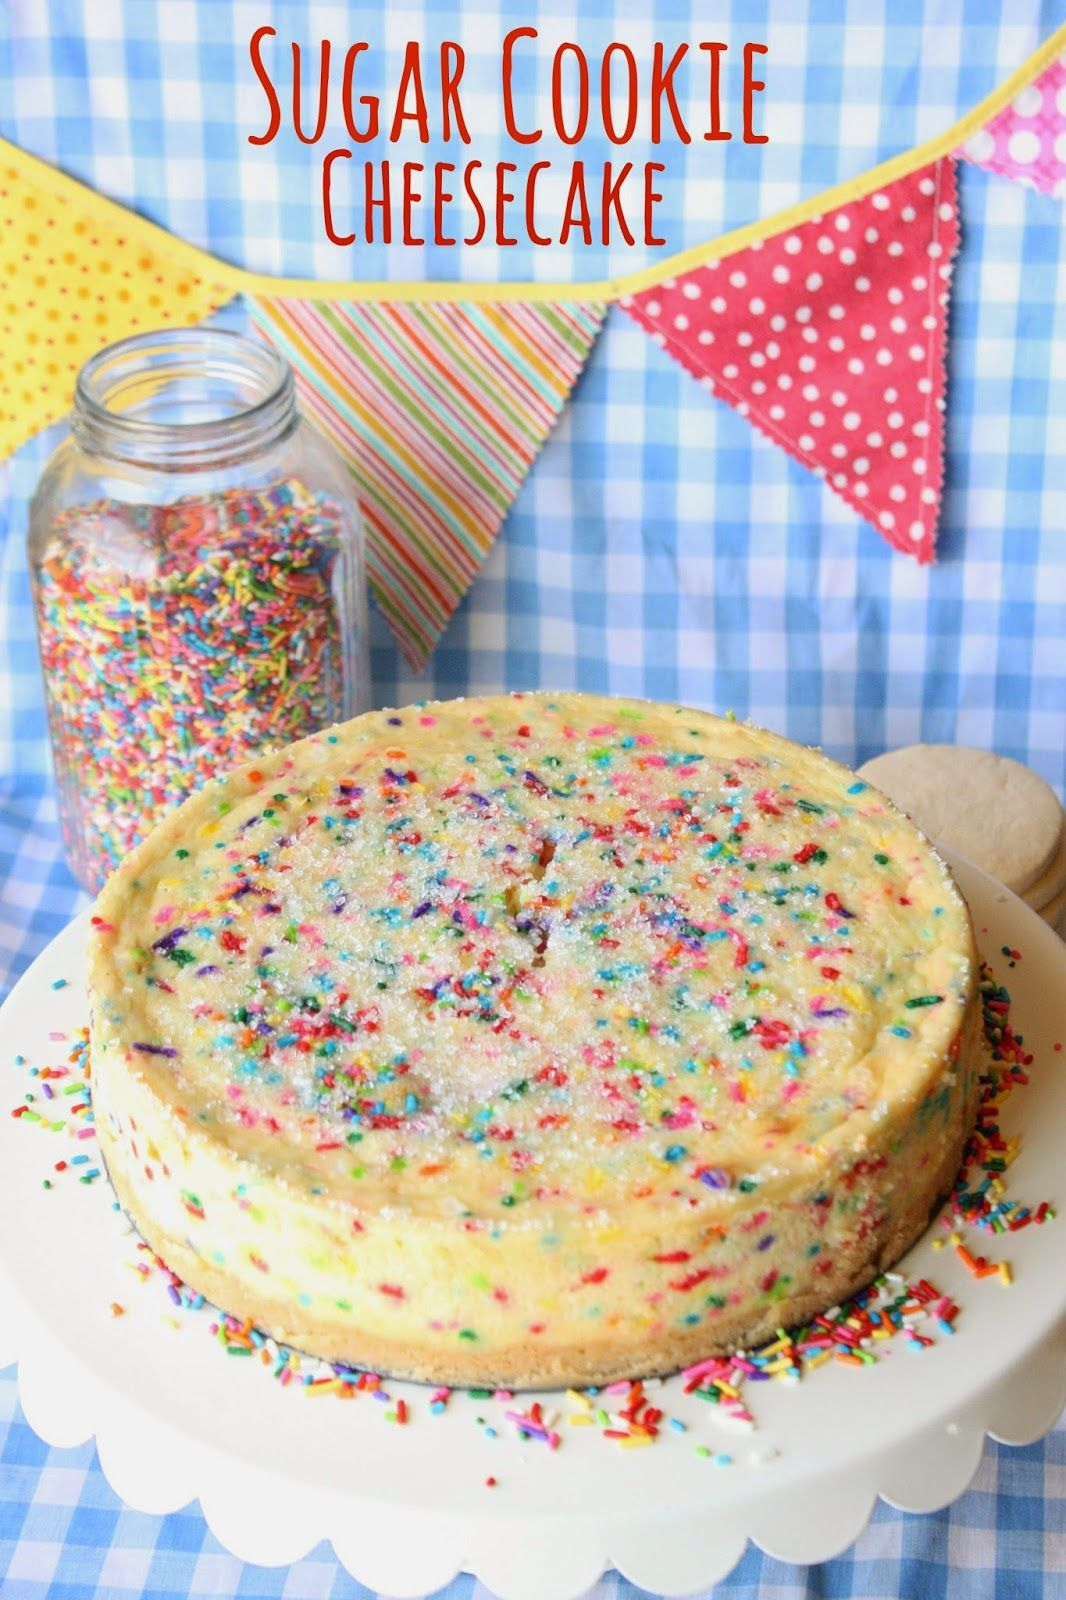 Sugar Cookie Cheesecake by Munchkin Munchies Im not a fan of the